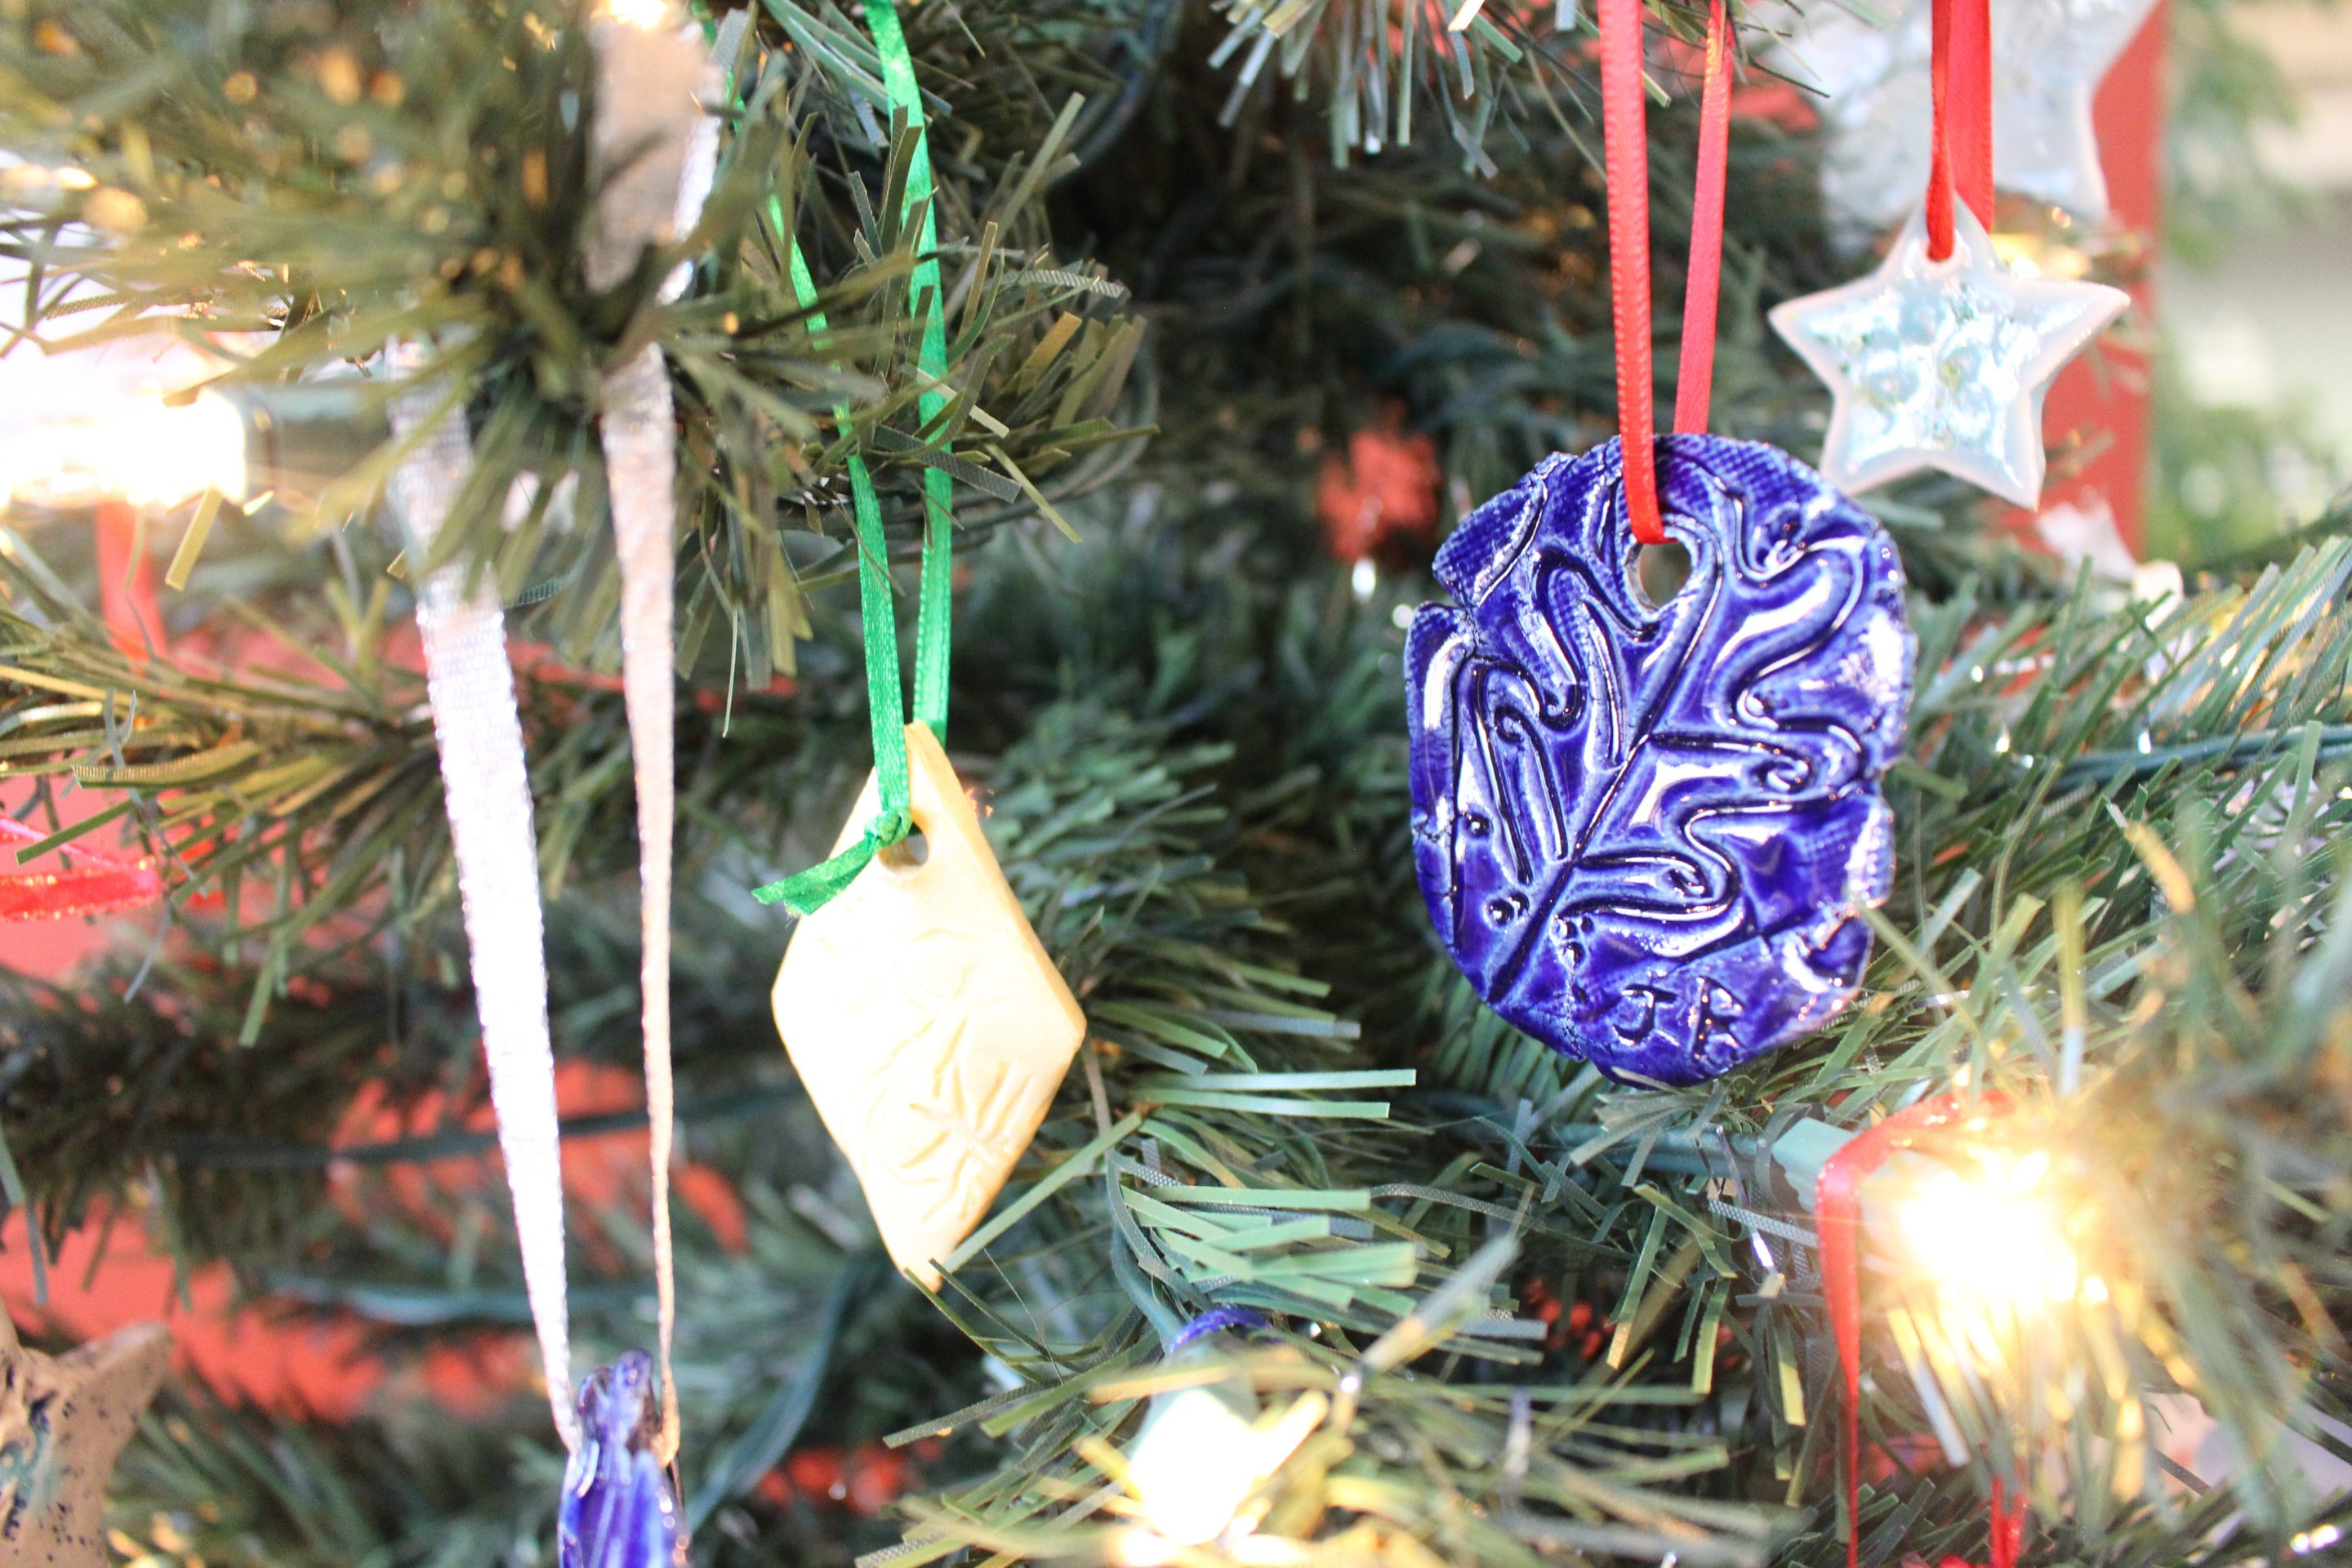 Photo showing blue, yellow, and turquoise ornaments. One ornament has a leaf design on it.